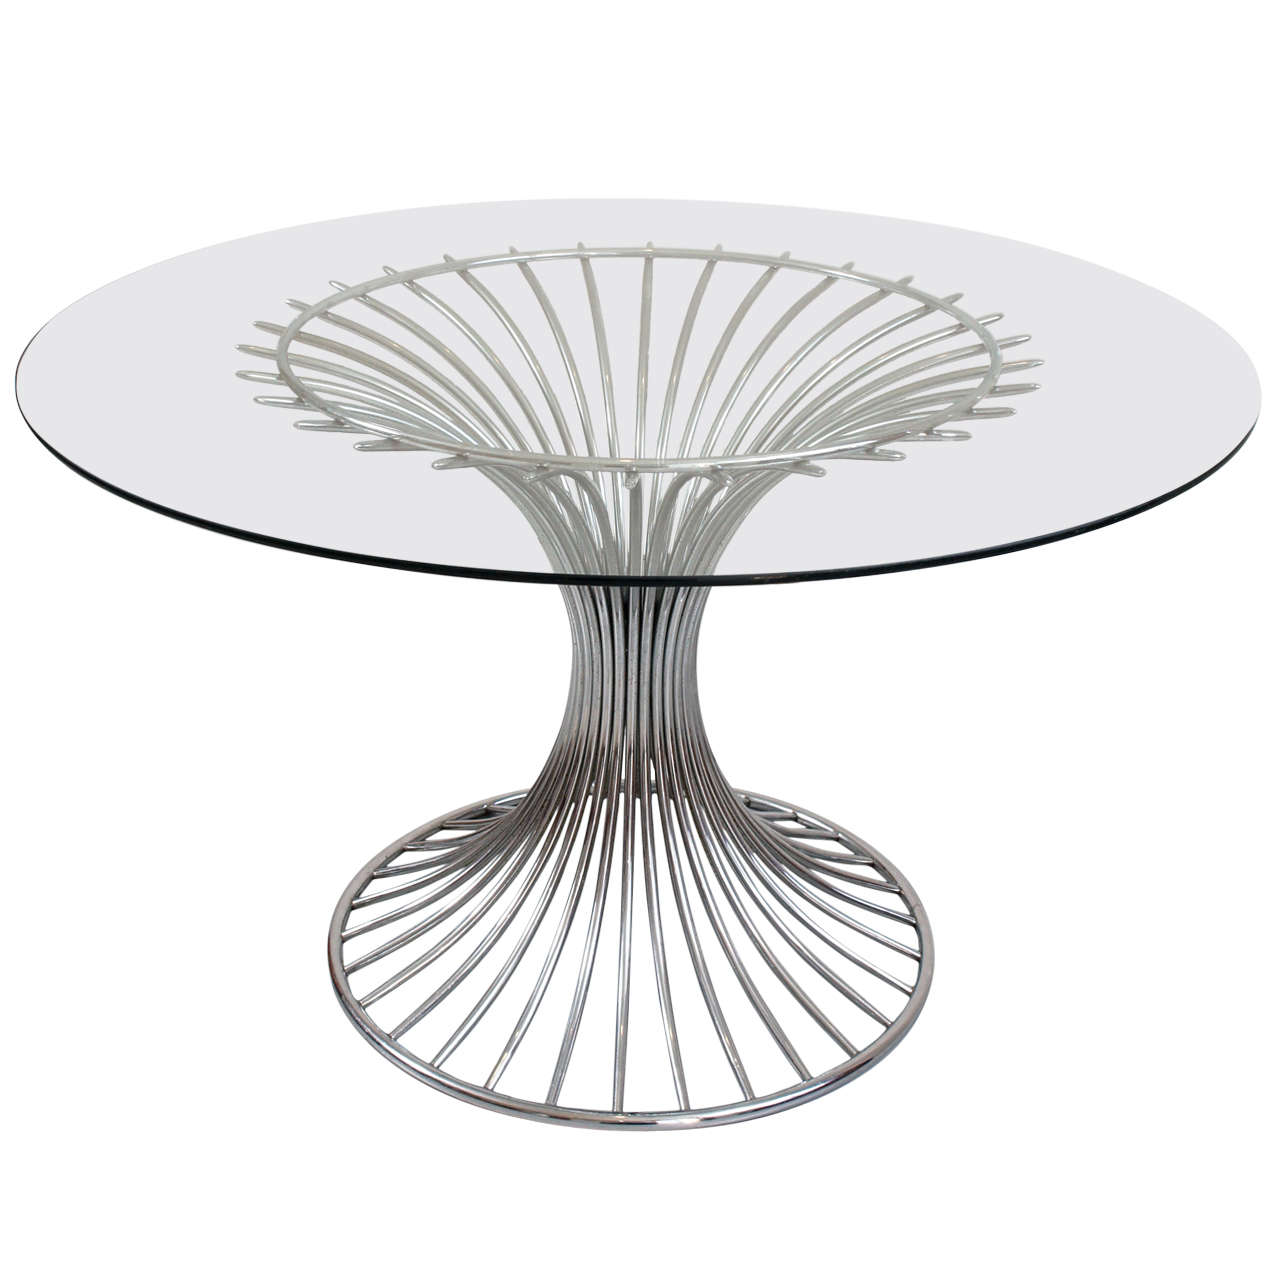 Mid 20th Century Chrome And Gl Top Round Dining Table At 1stdibs